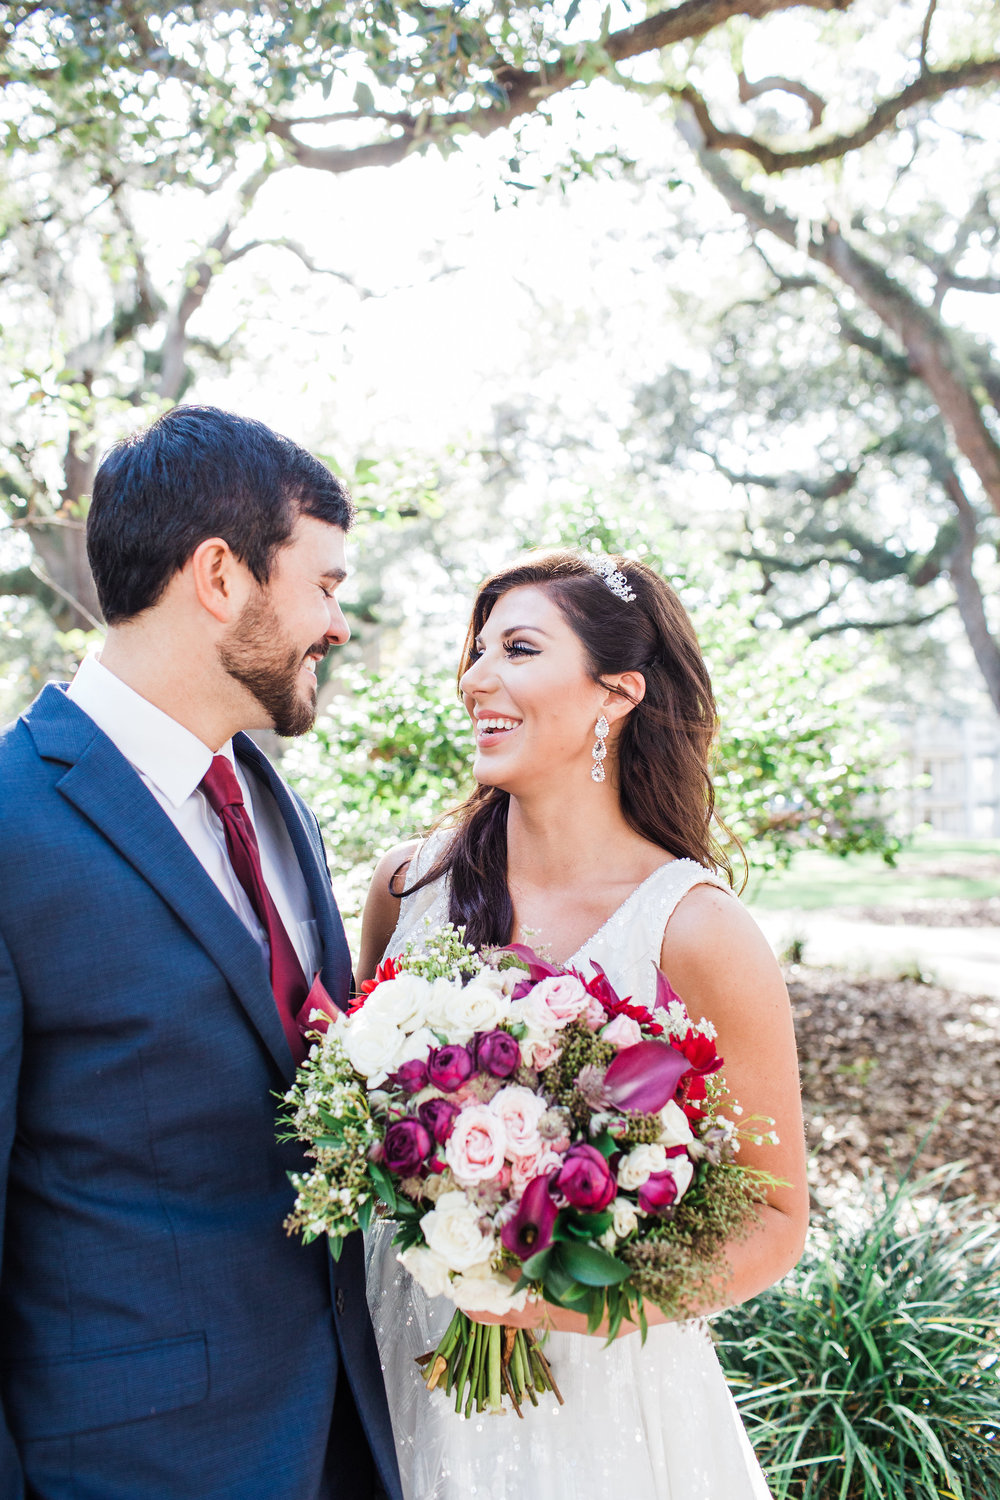 apt-b-photography-lindsey-shawn-Savannah-wedding-photographer-savannah-elopement-photographer-historic-savannah-elopement-savannah-weddings-hilton-head-wedding-photographer-jekyll-island-wedding-photographer-14.jpg